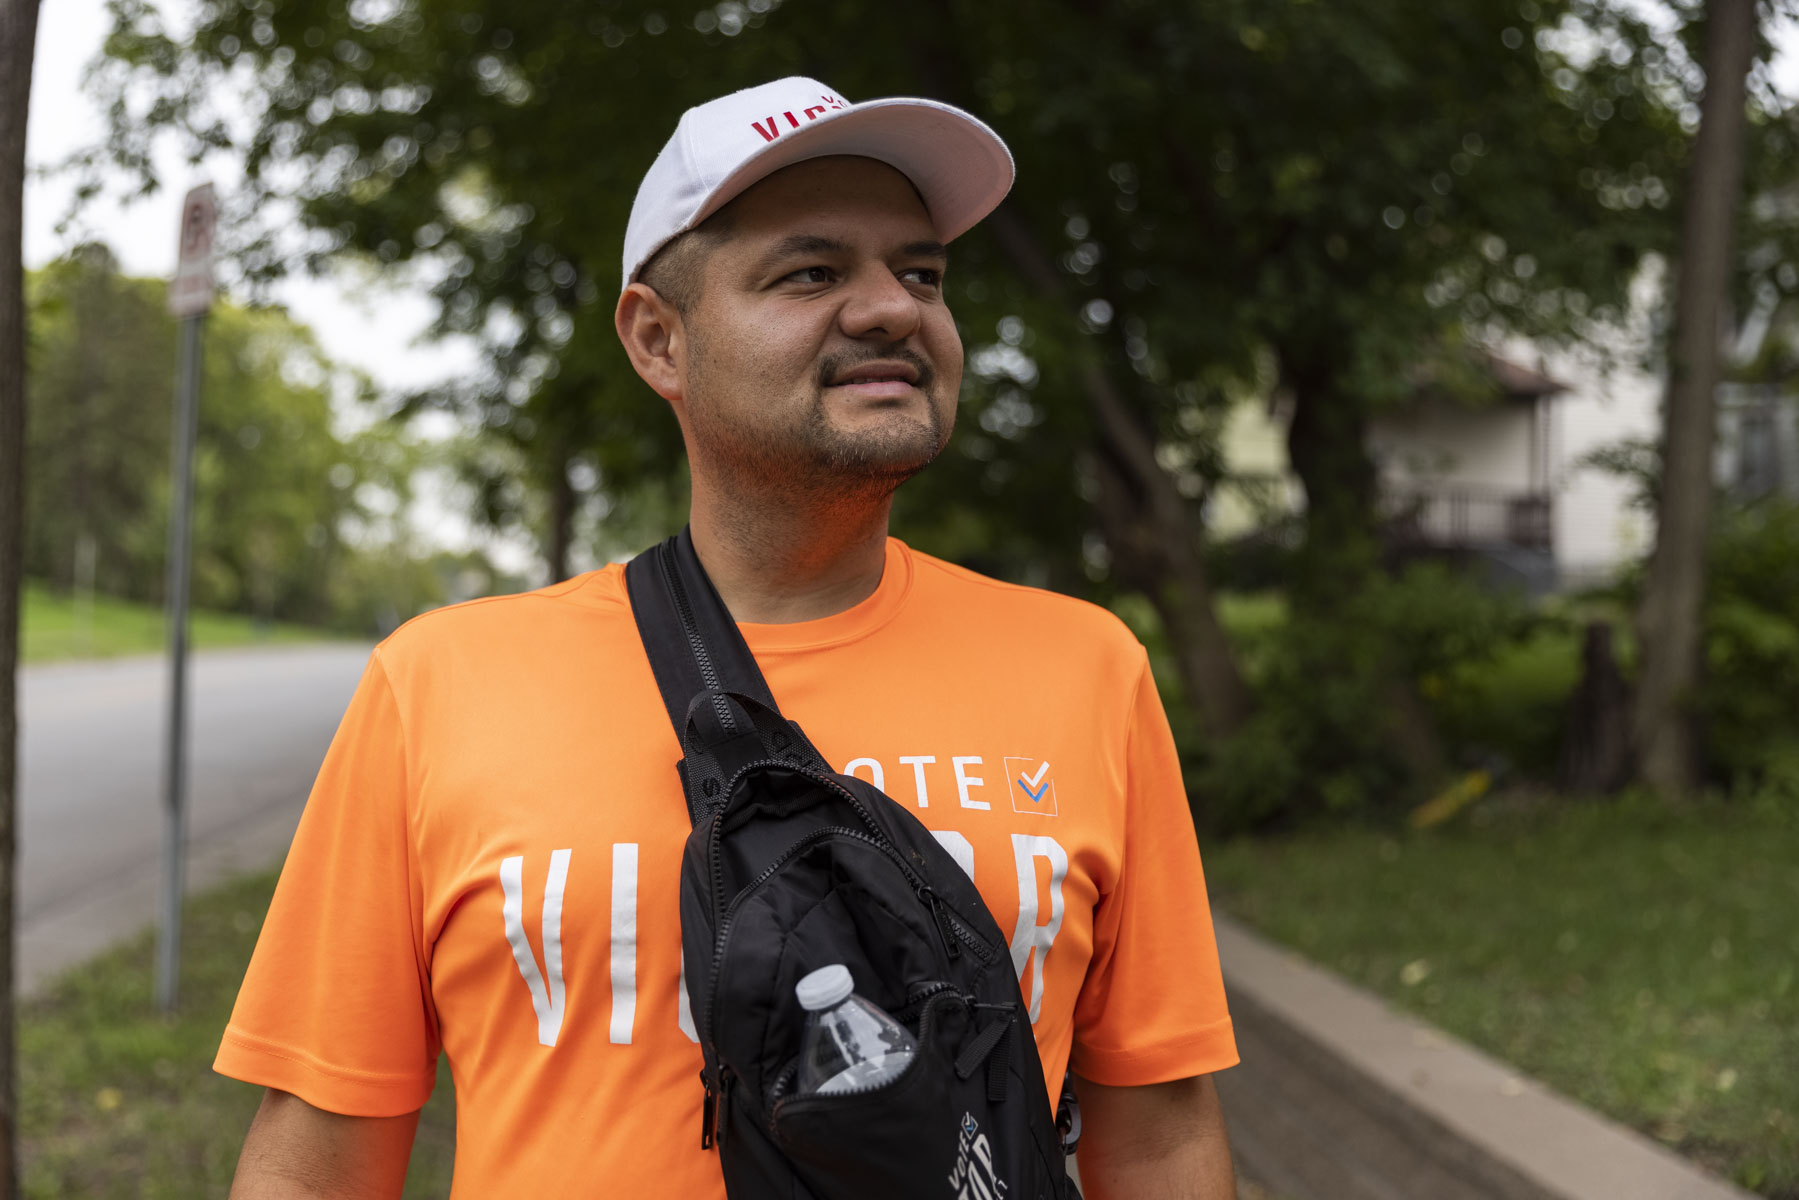 Victor Martinez, a candidate for the Ward 5 City Council seat in Minneapolis, door-knocks almost every day, delivering his pro-police, pro-life message